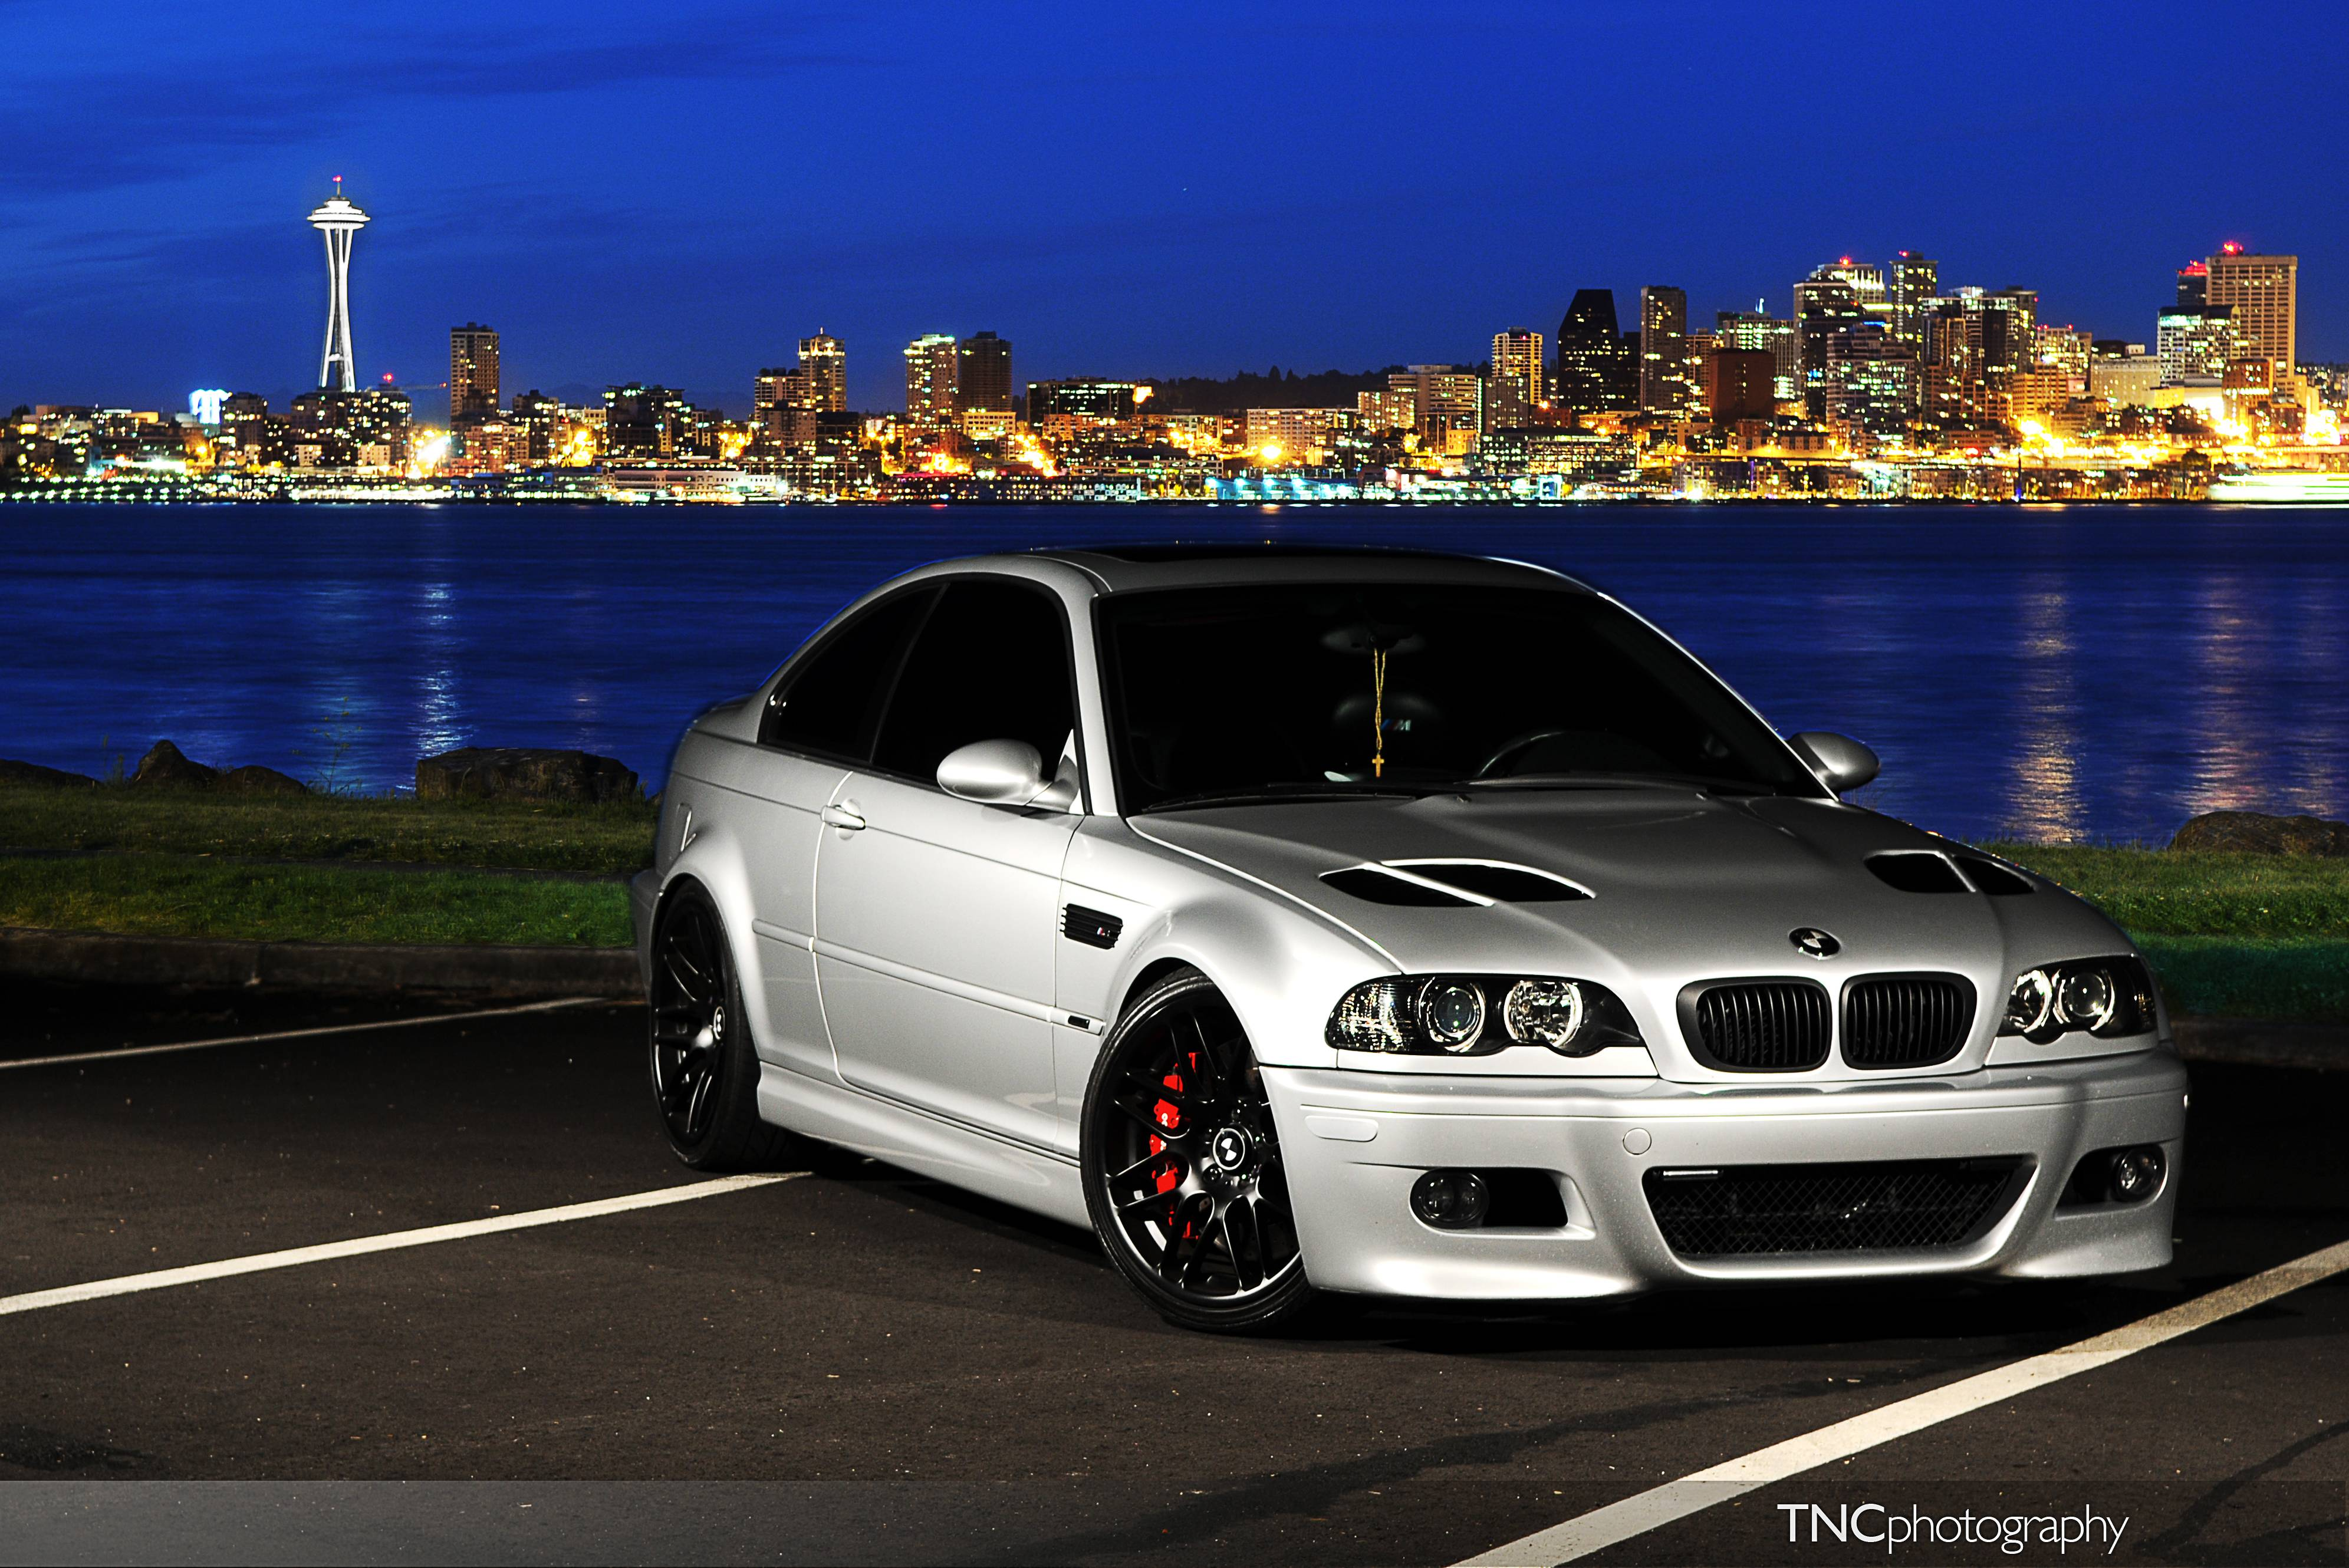 bmw m3 e46 wallpapers wallpaper cave. Black Bedroom Furniture Sets. Home Design Ideas